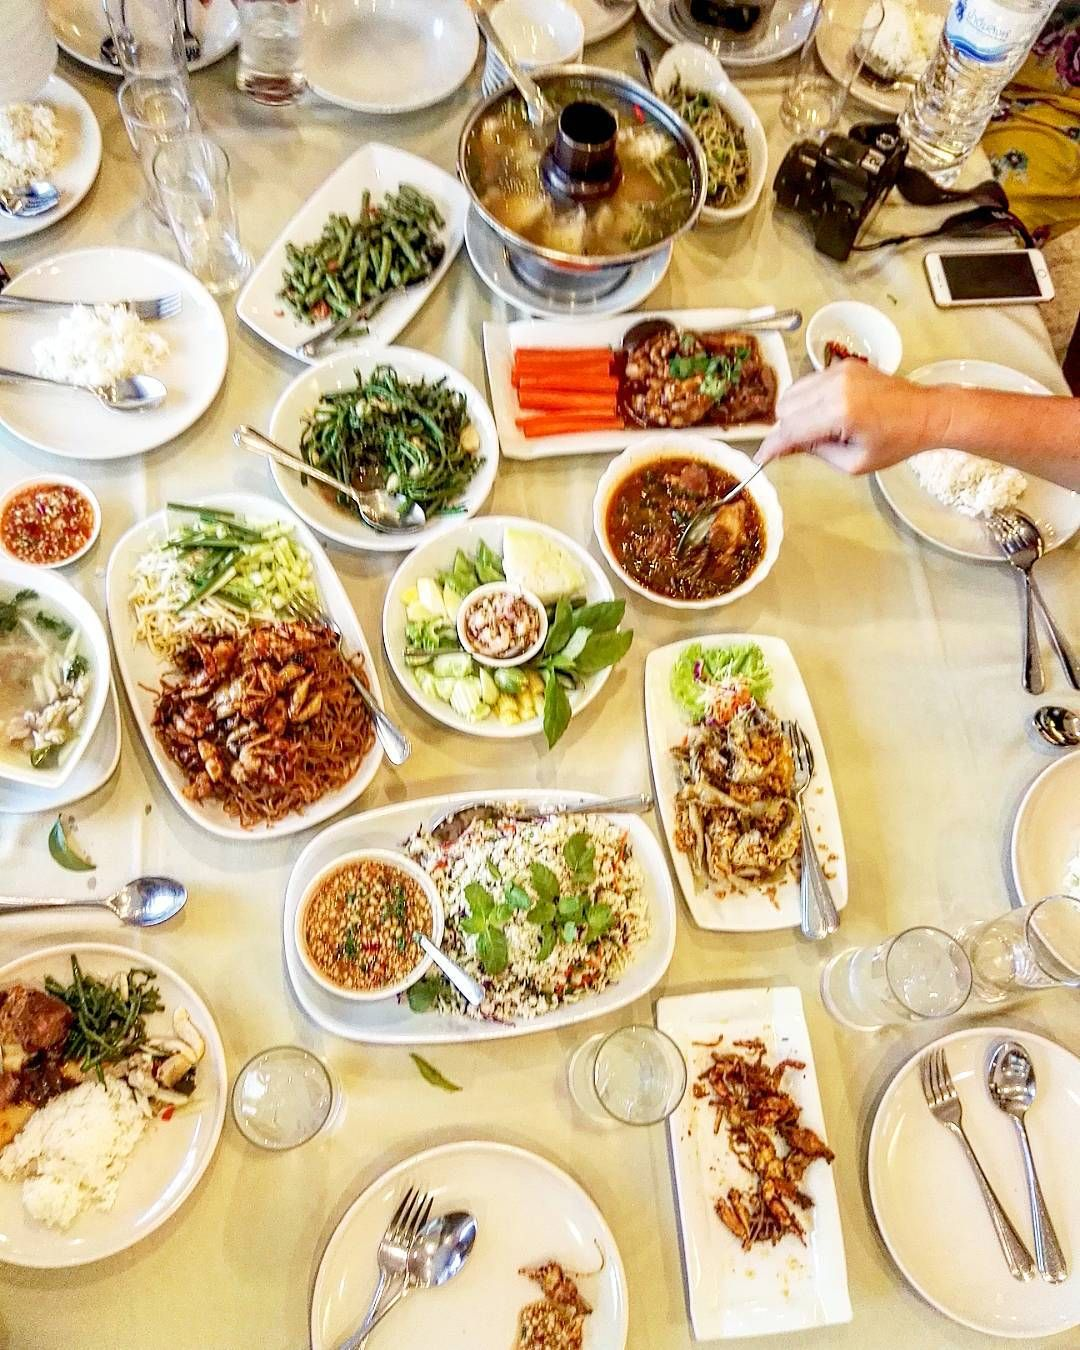 Dining Family Style In Thailand Means A Never Ending Stream Of